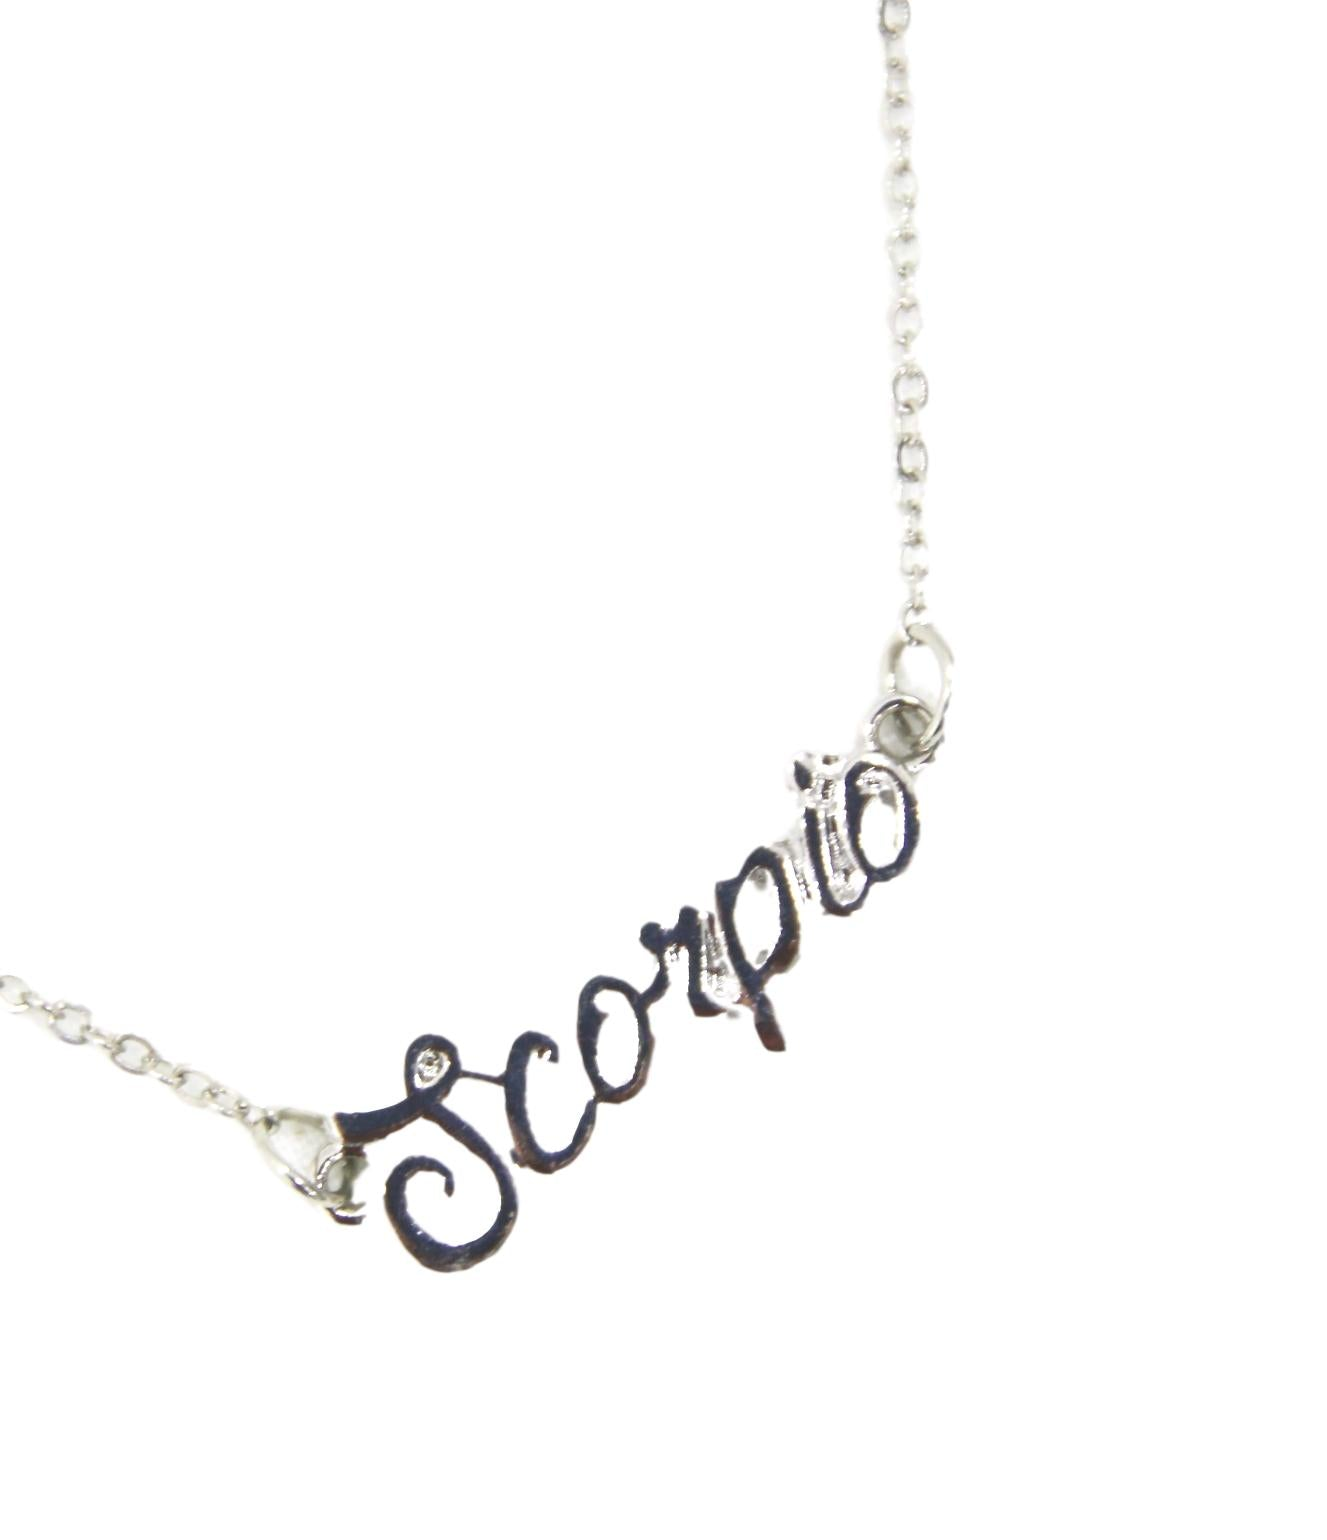 Silver Scorpio necklace